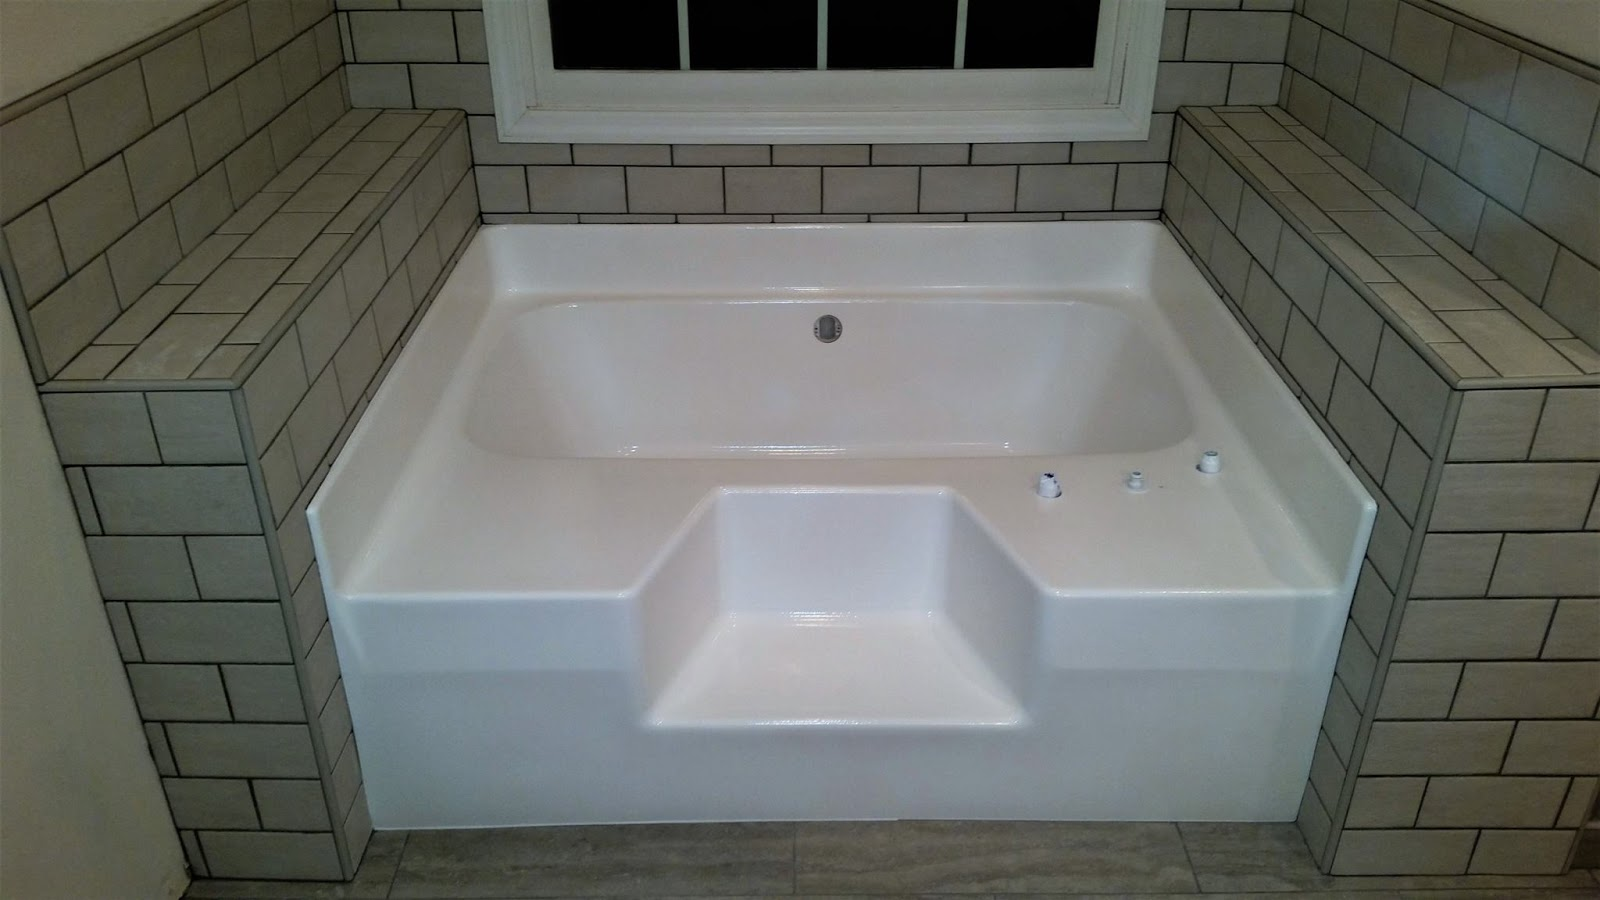 Bathtub Refinishing Company in Knoxville Explains Why You Should ...